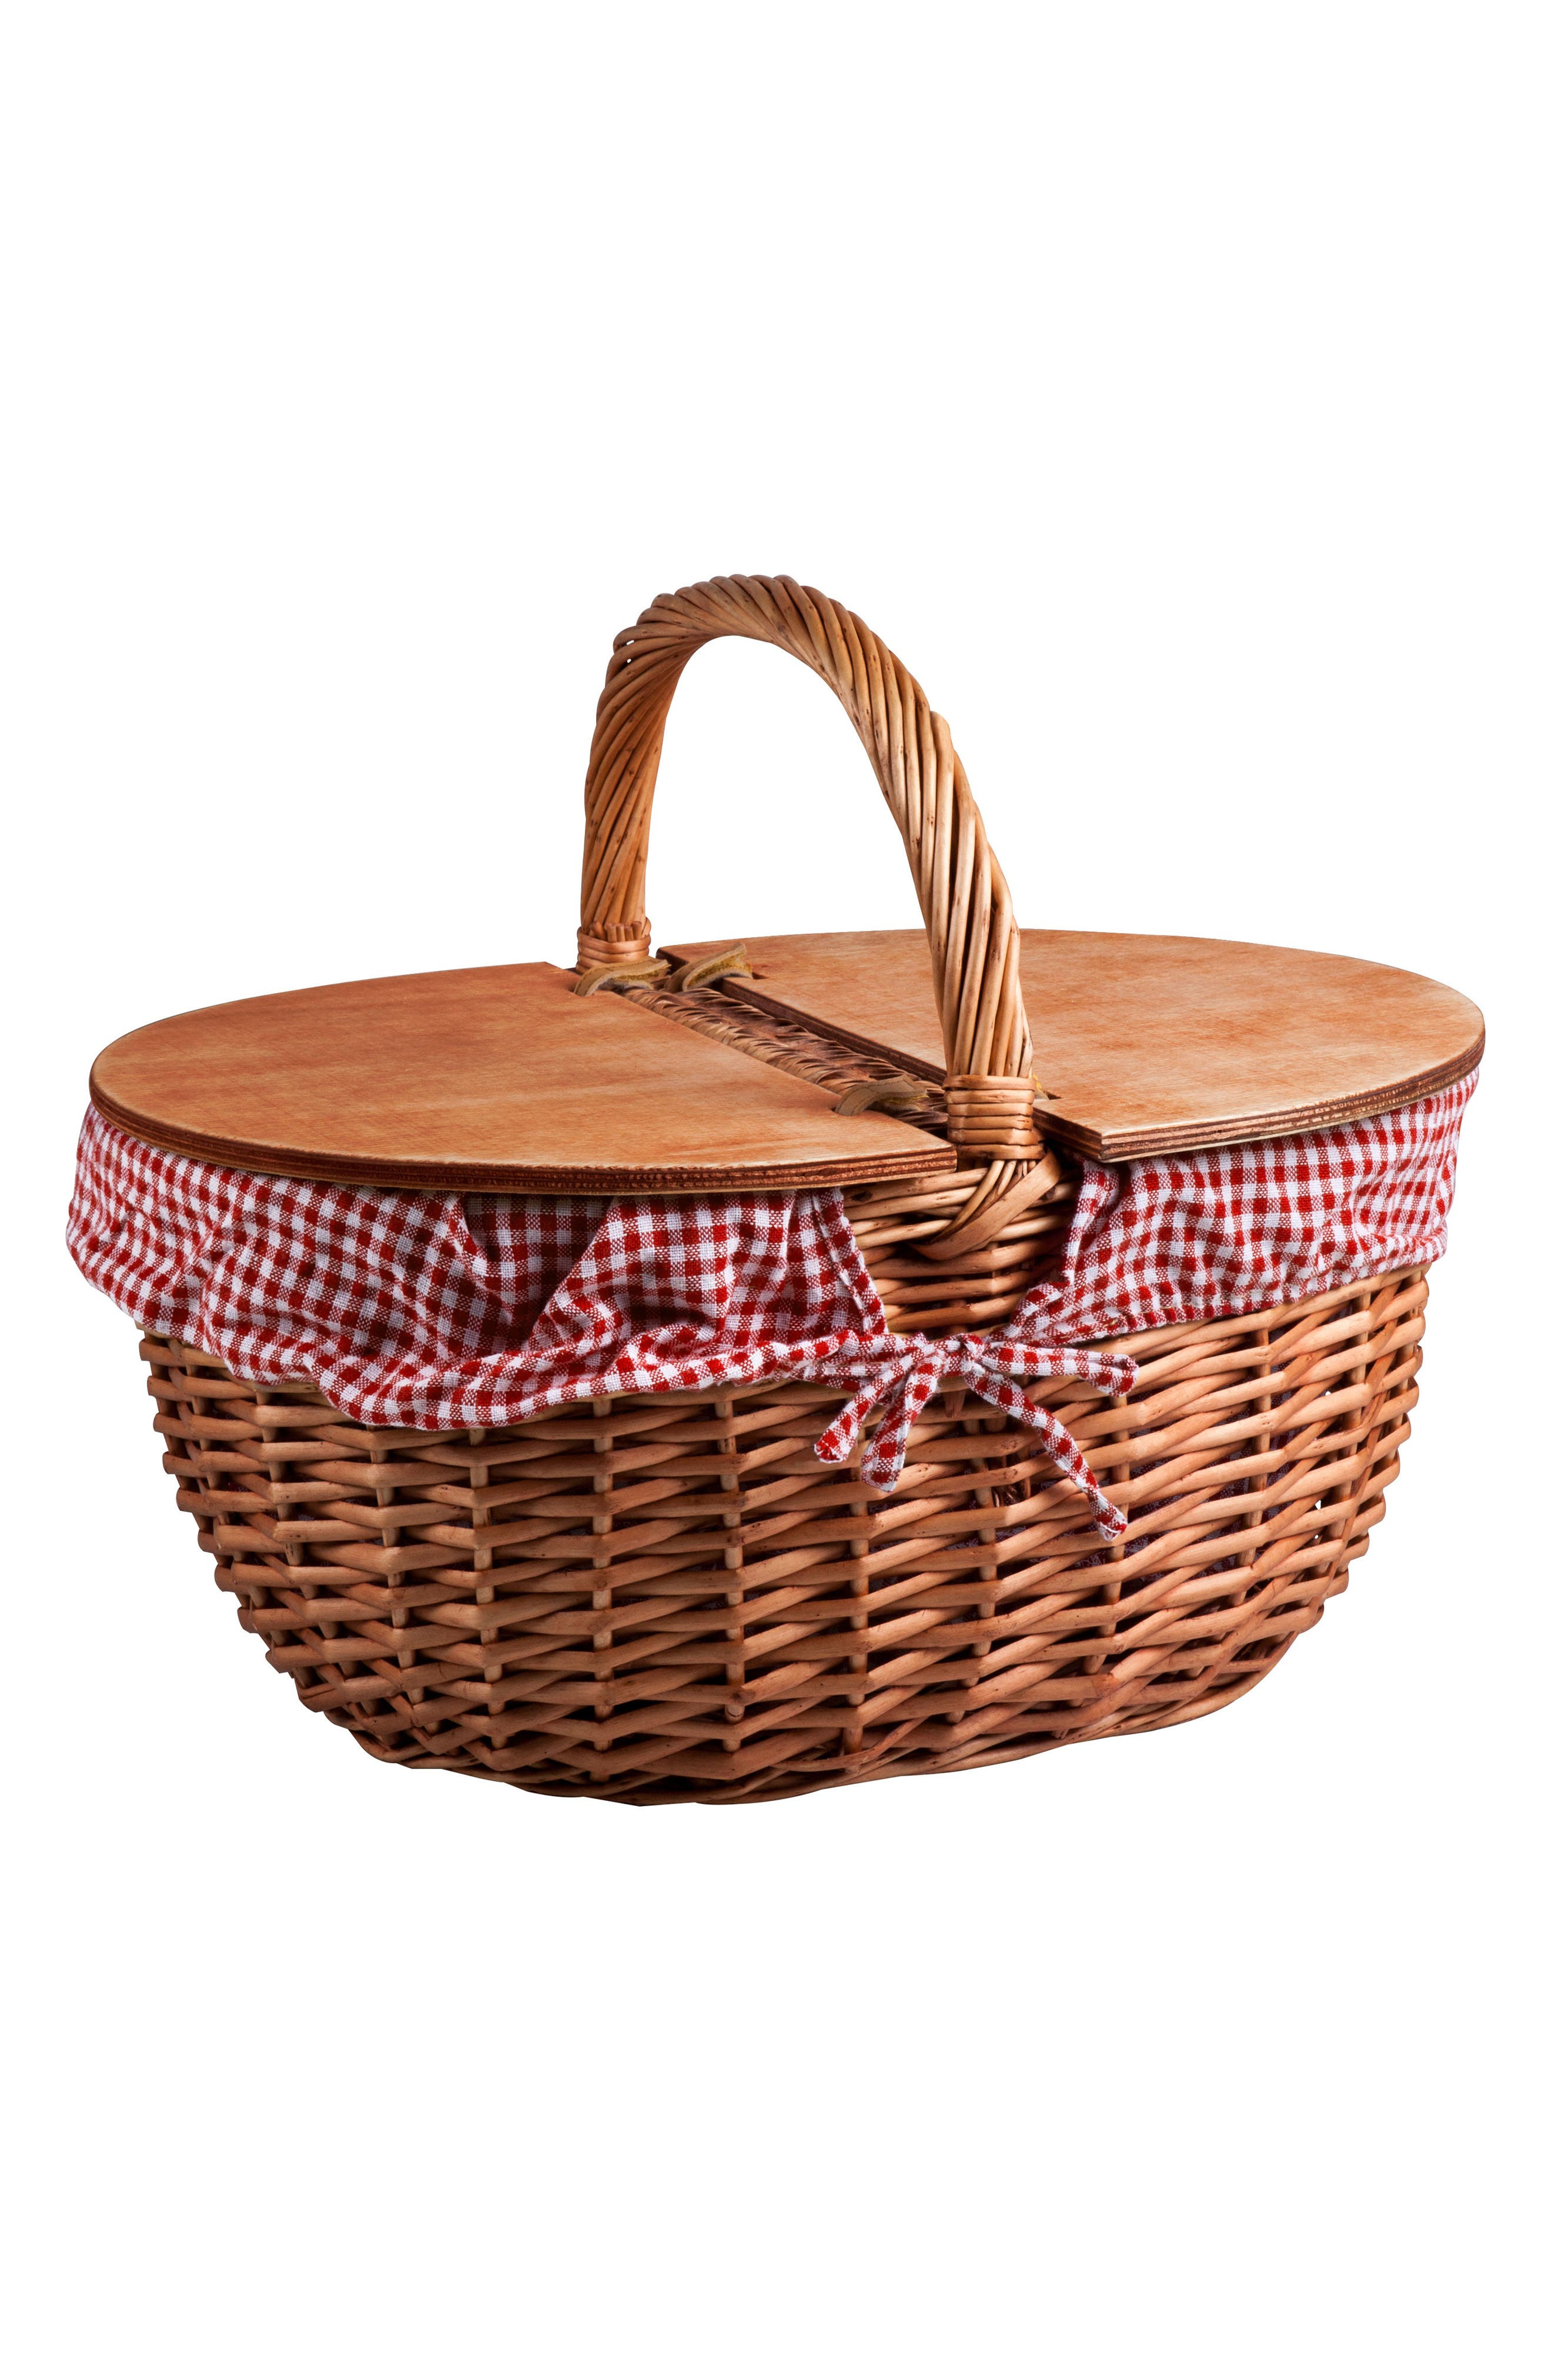 Main Image - Picnic Time Country Wicker Picnic Basket